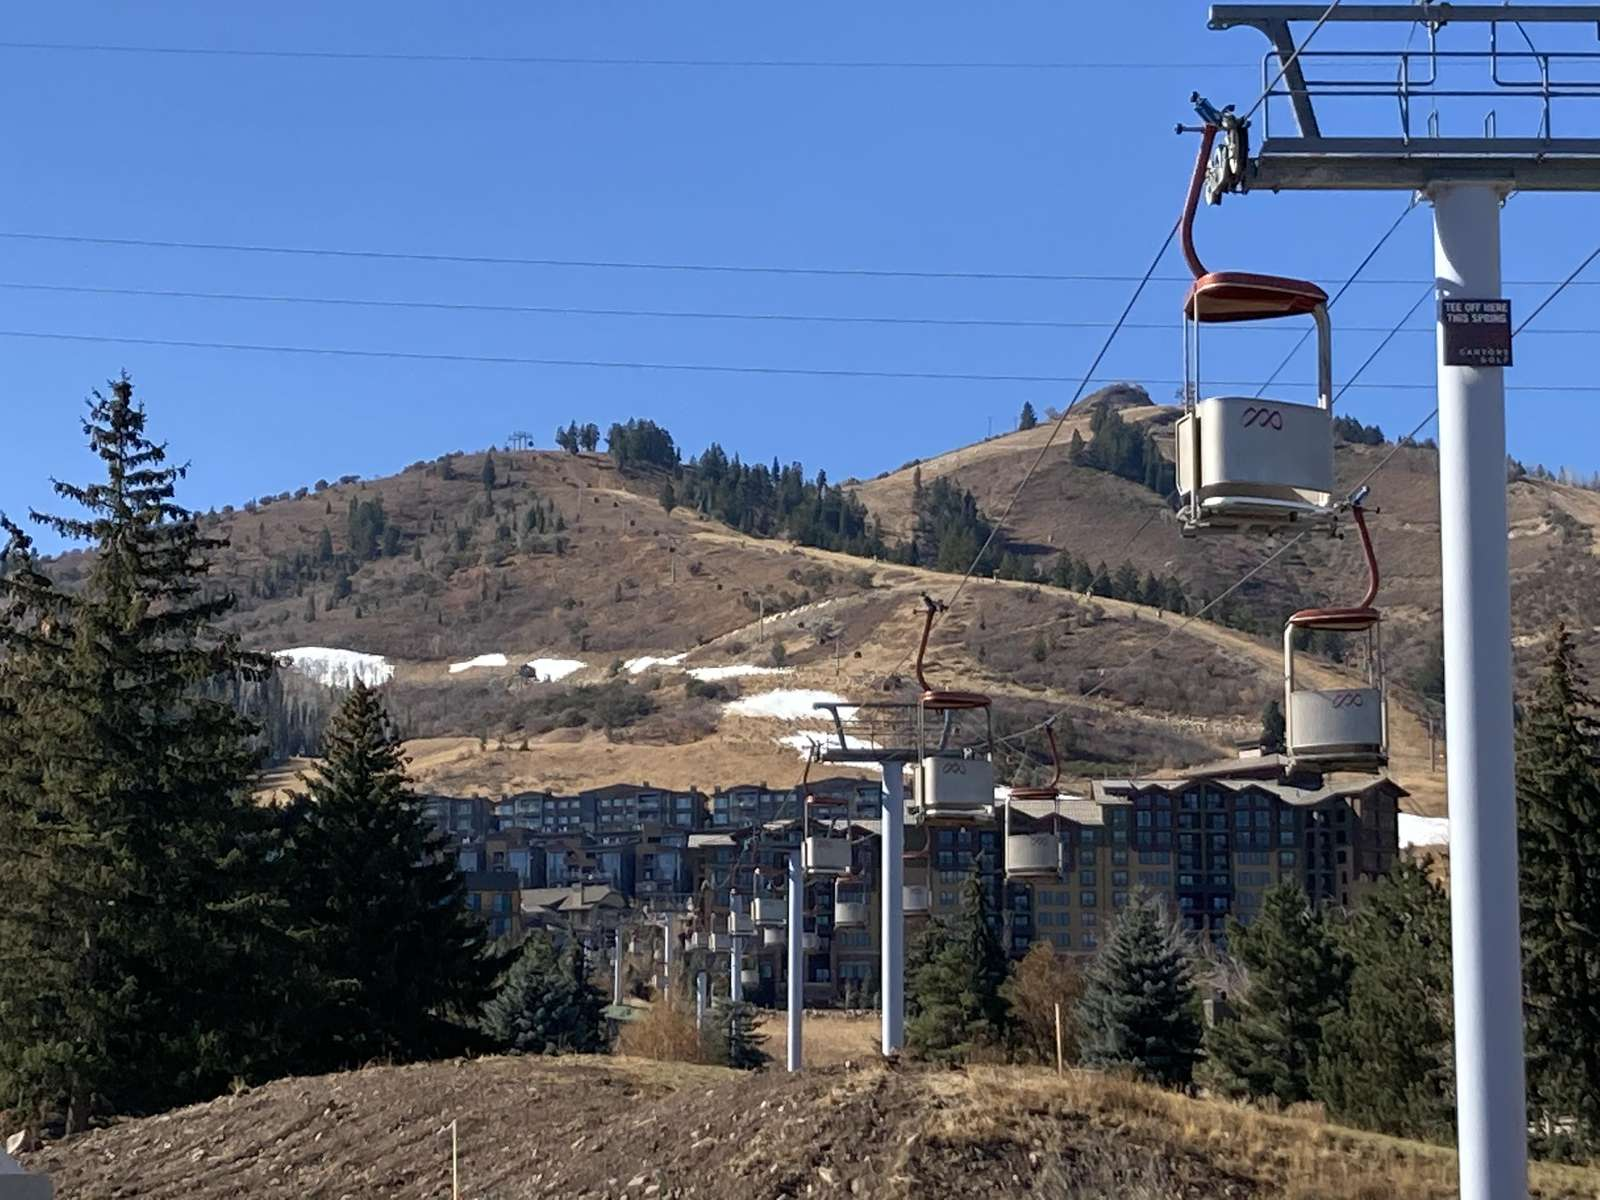 The Cabriolet Gondola takes you to the Canyons Village of the Park City Mountain Resort